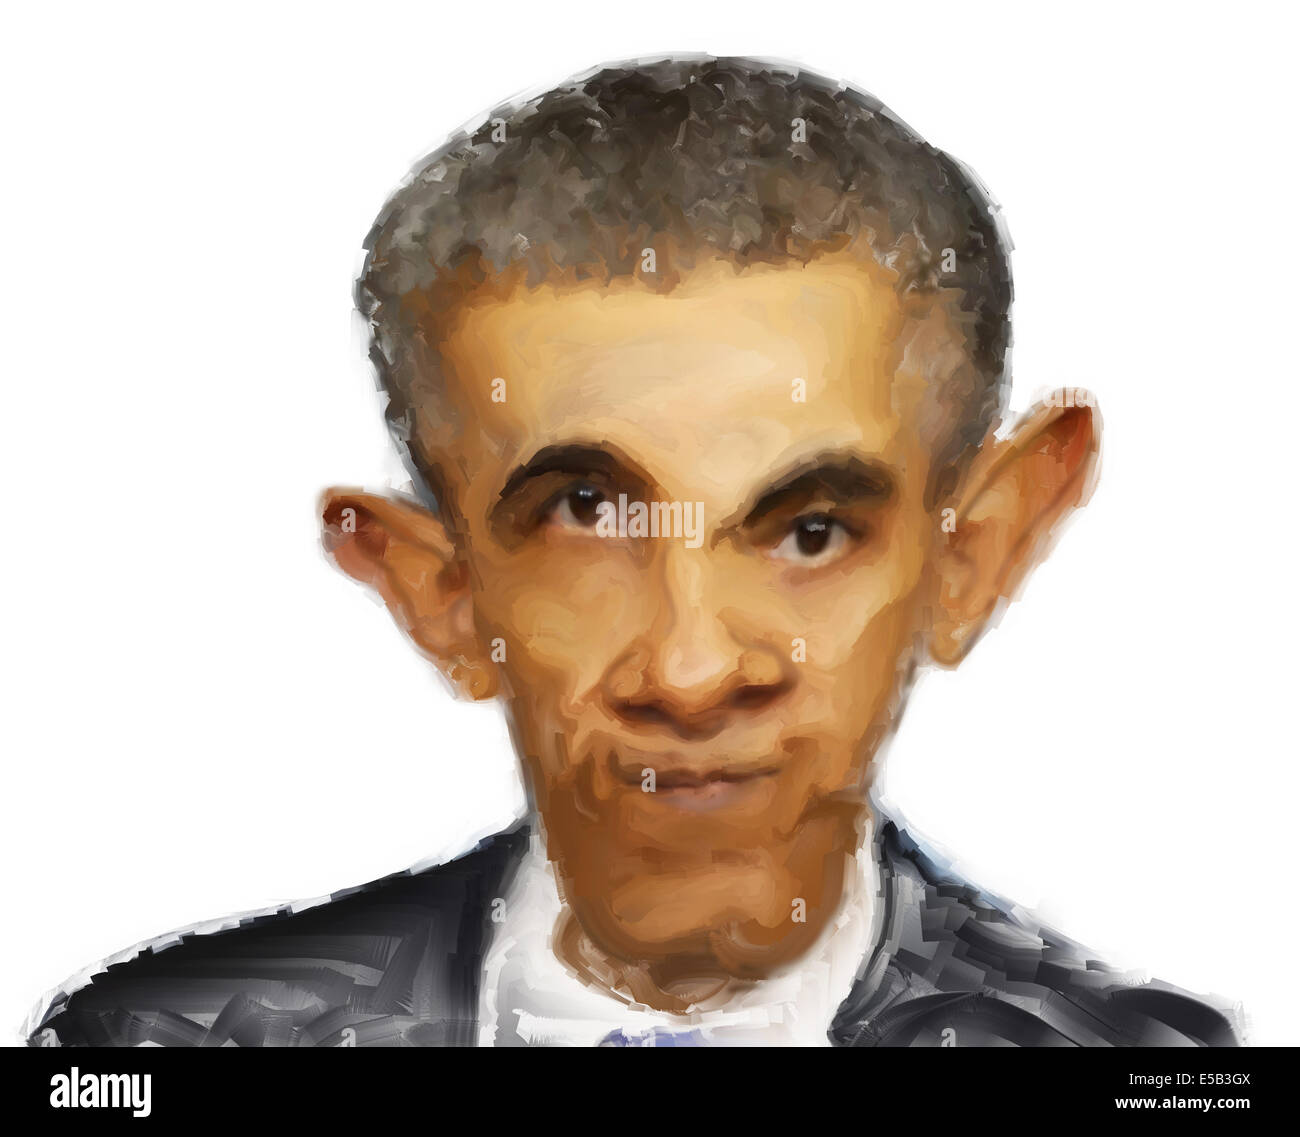 Caricature portrait painting of Barack Obama on a white background - Stock Image